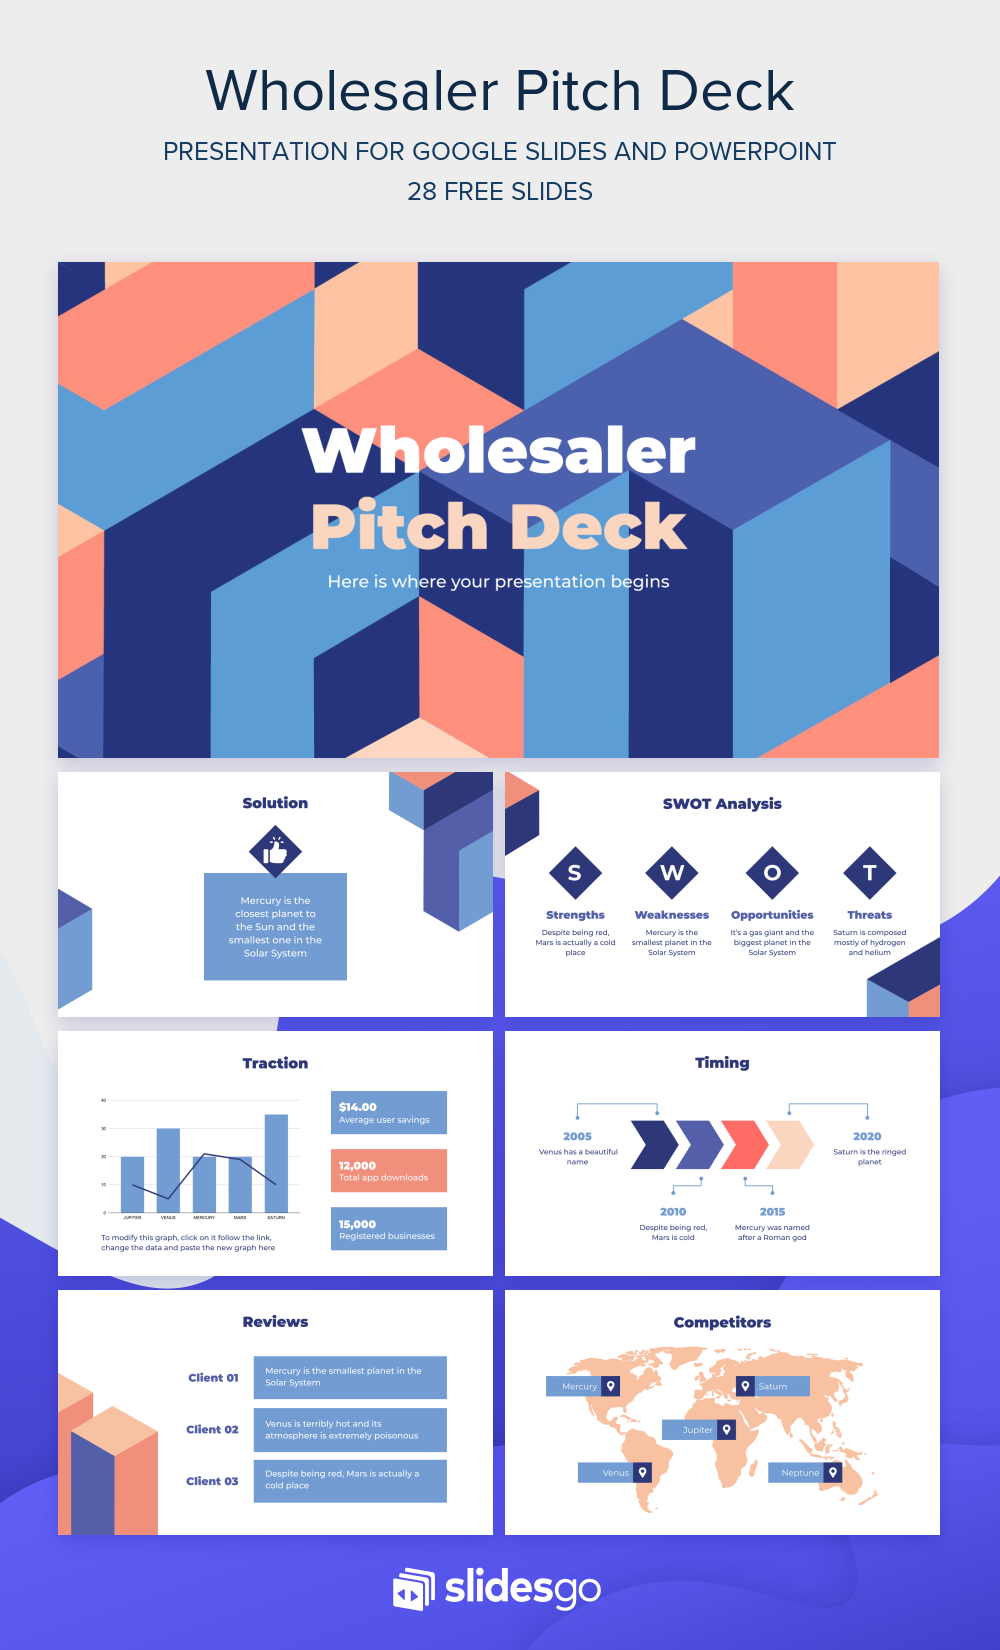 Design your sales strategy with this Wholesaler Pitch Deck